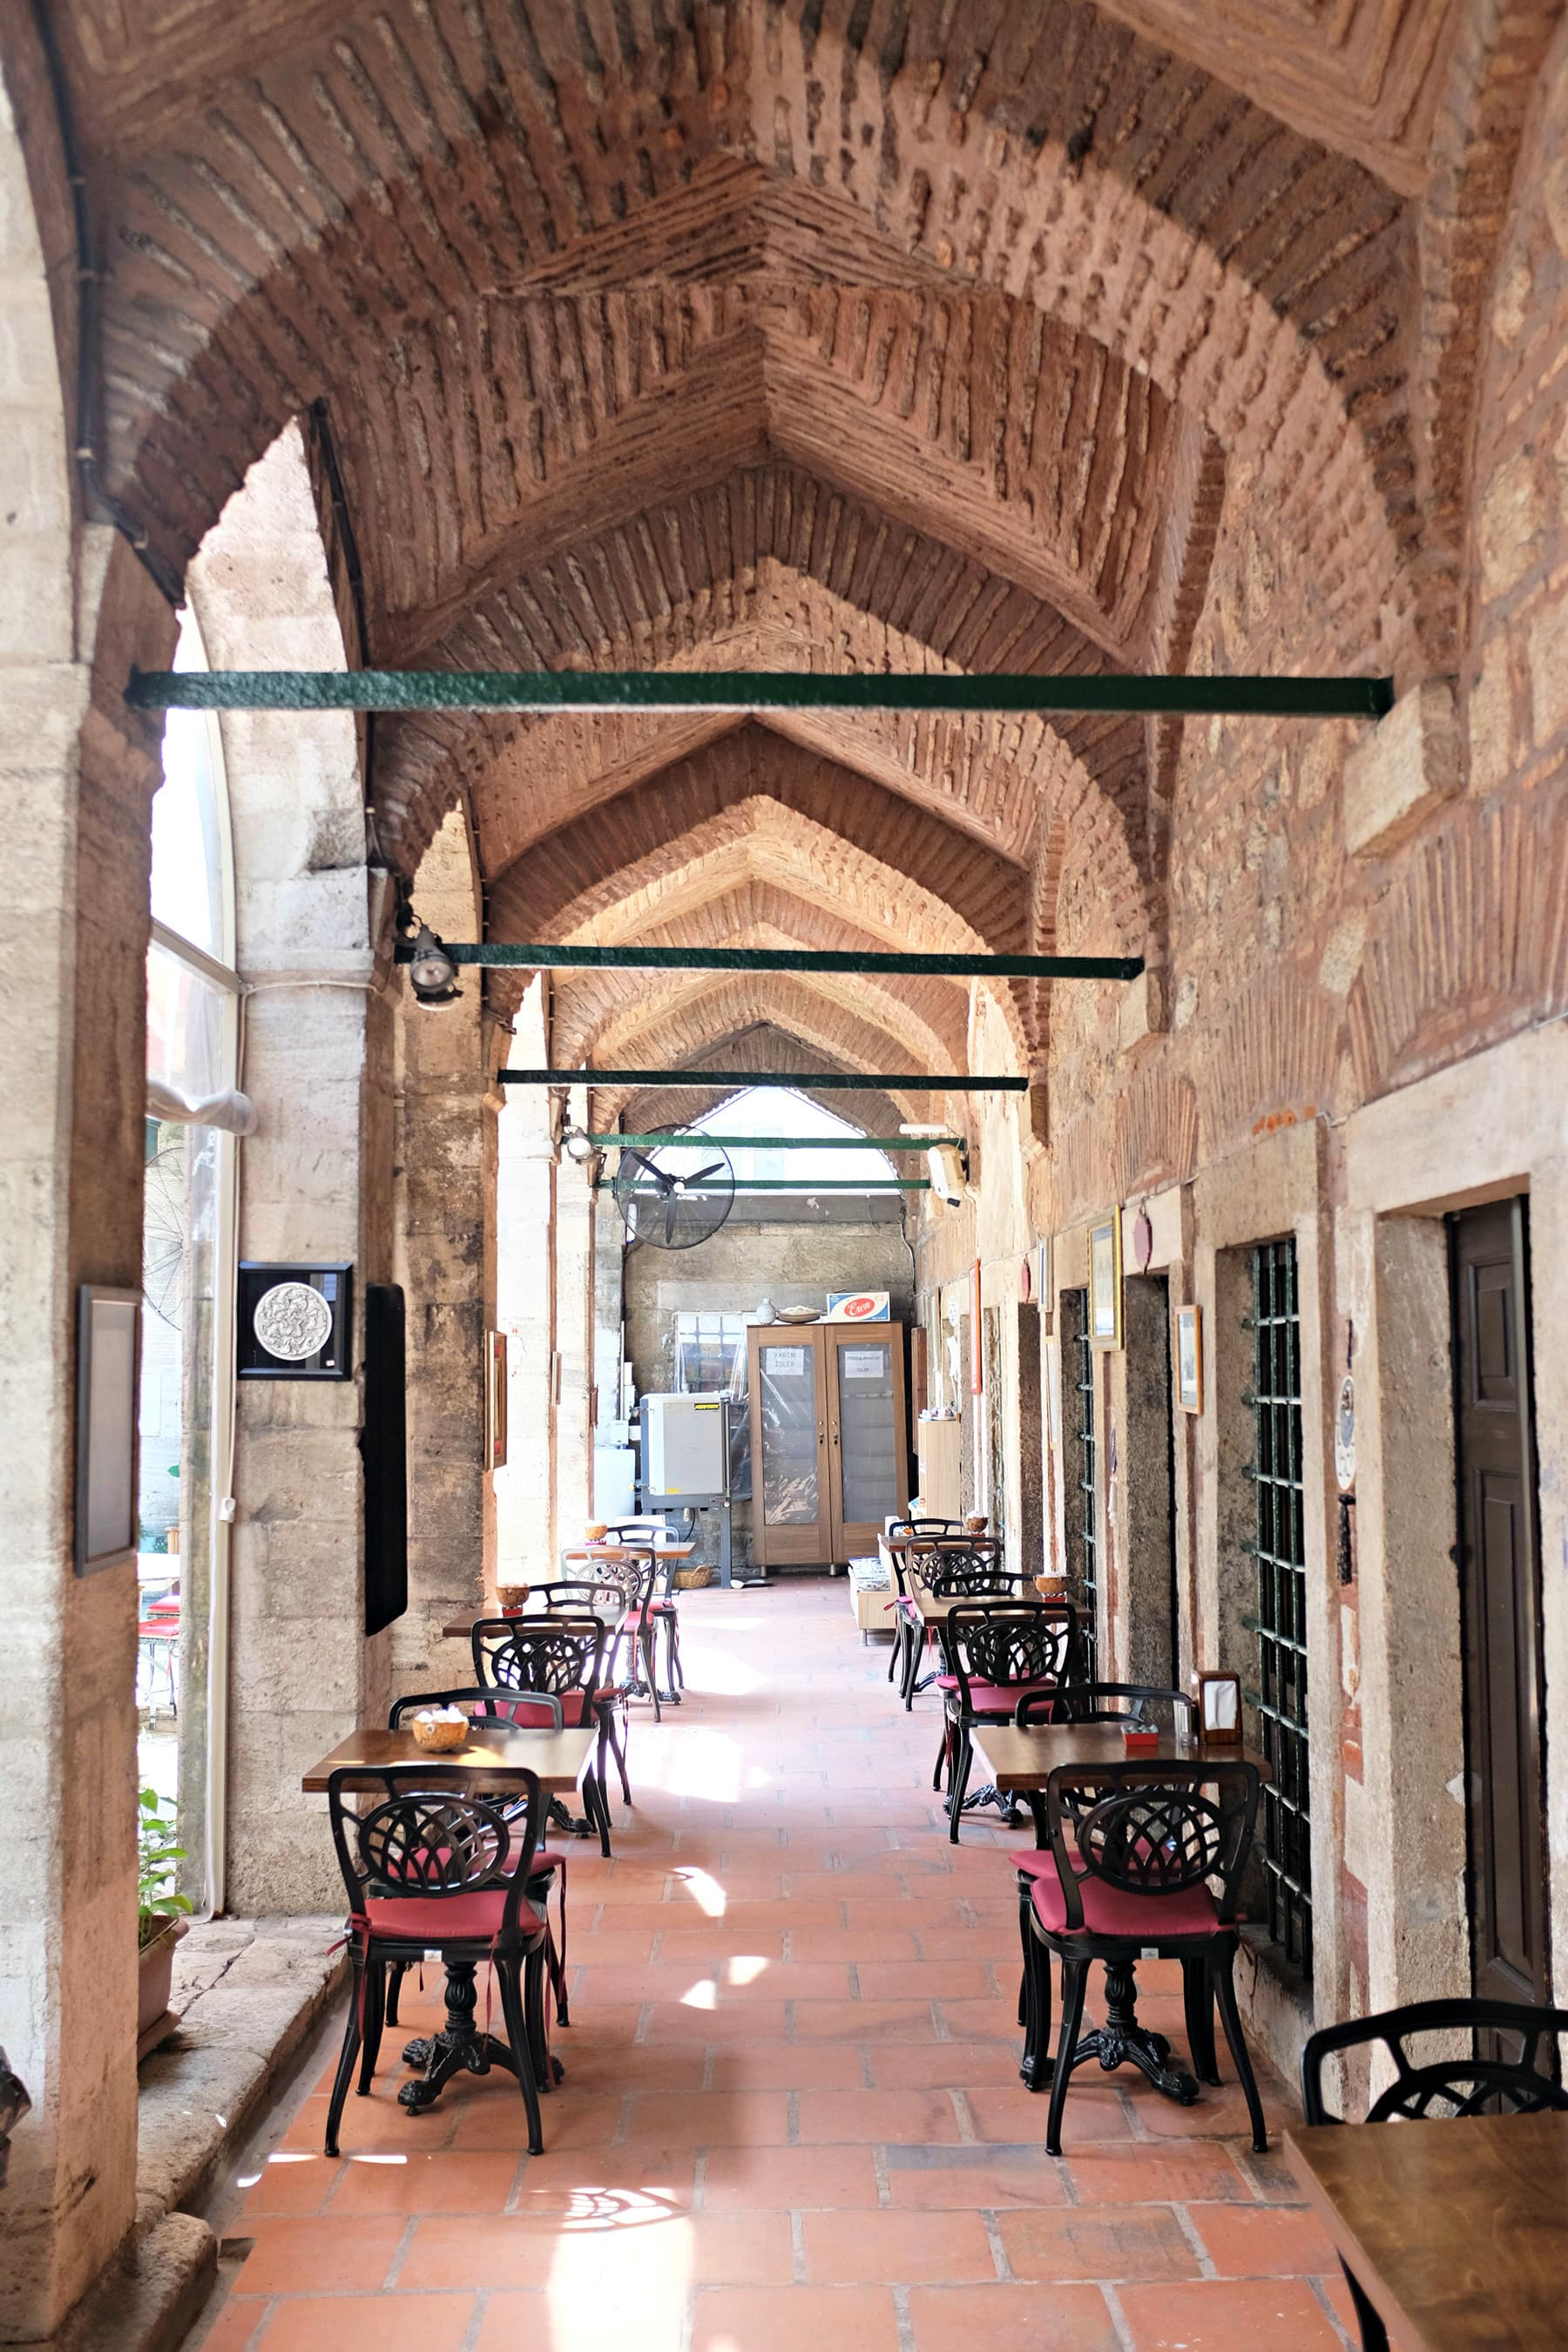 Caferaga Madrasa was a Madrassah of Ottoman era which has been converted into a restaurant and handicrafts shop.